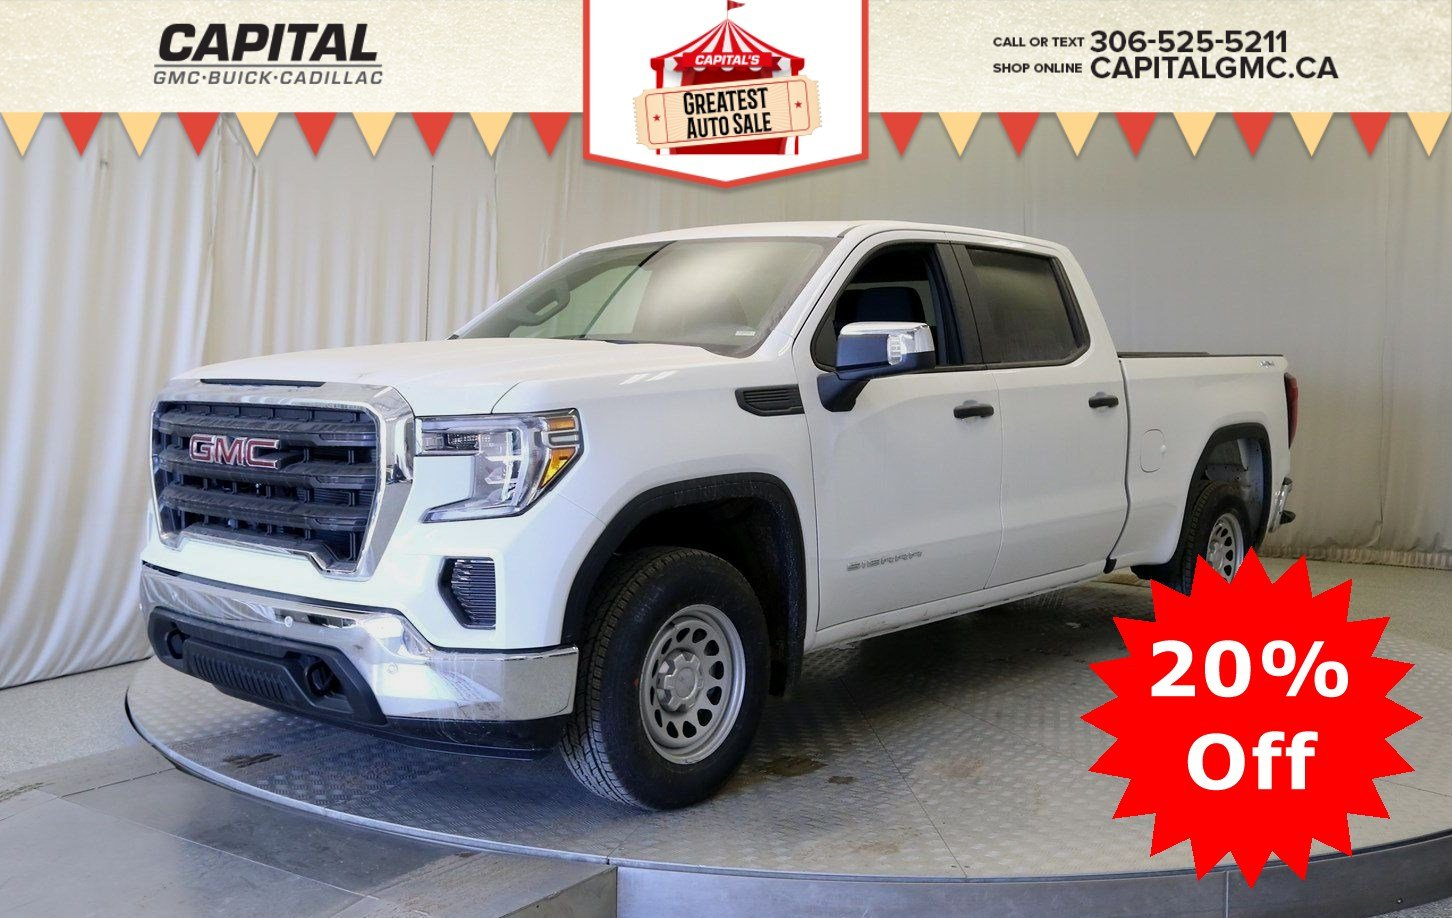 New 2019 GMC Sierra 1500 Crew Cab*4x4-Trailer Pkg with Trailer Brake Controller-Front & Rear Chrome Bumpers*